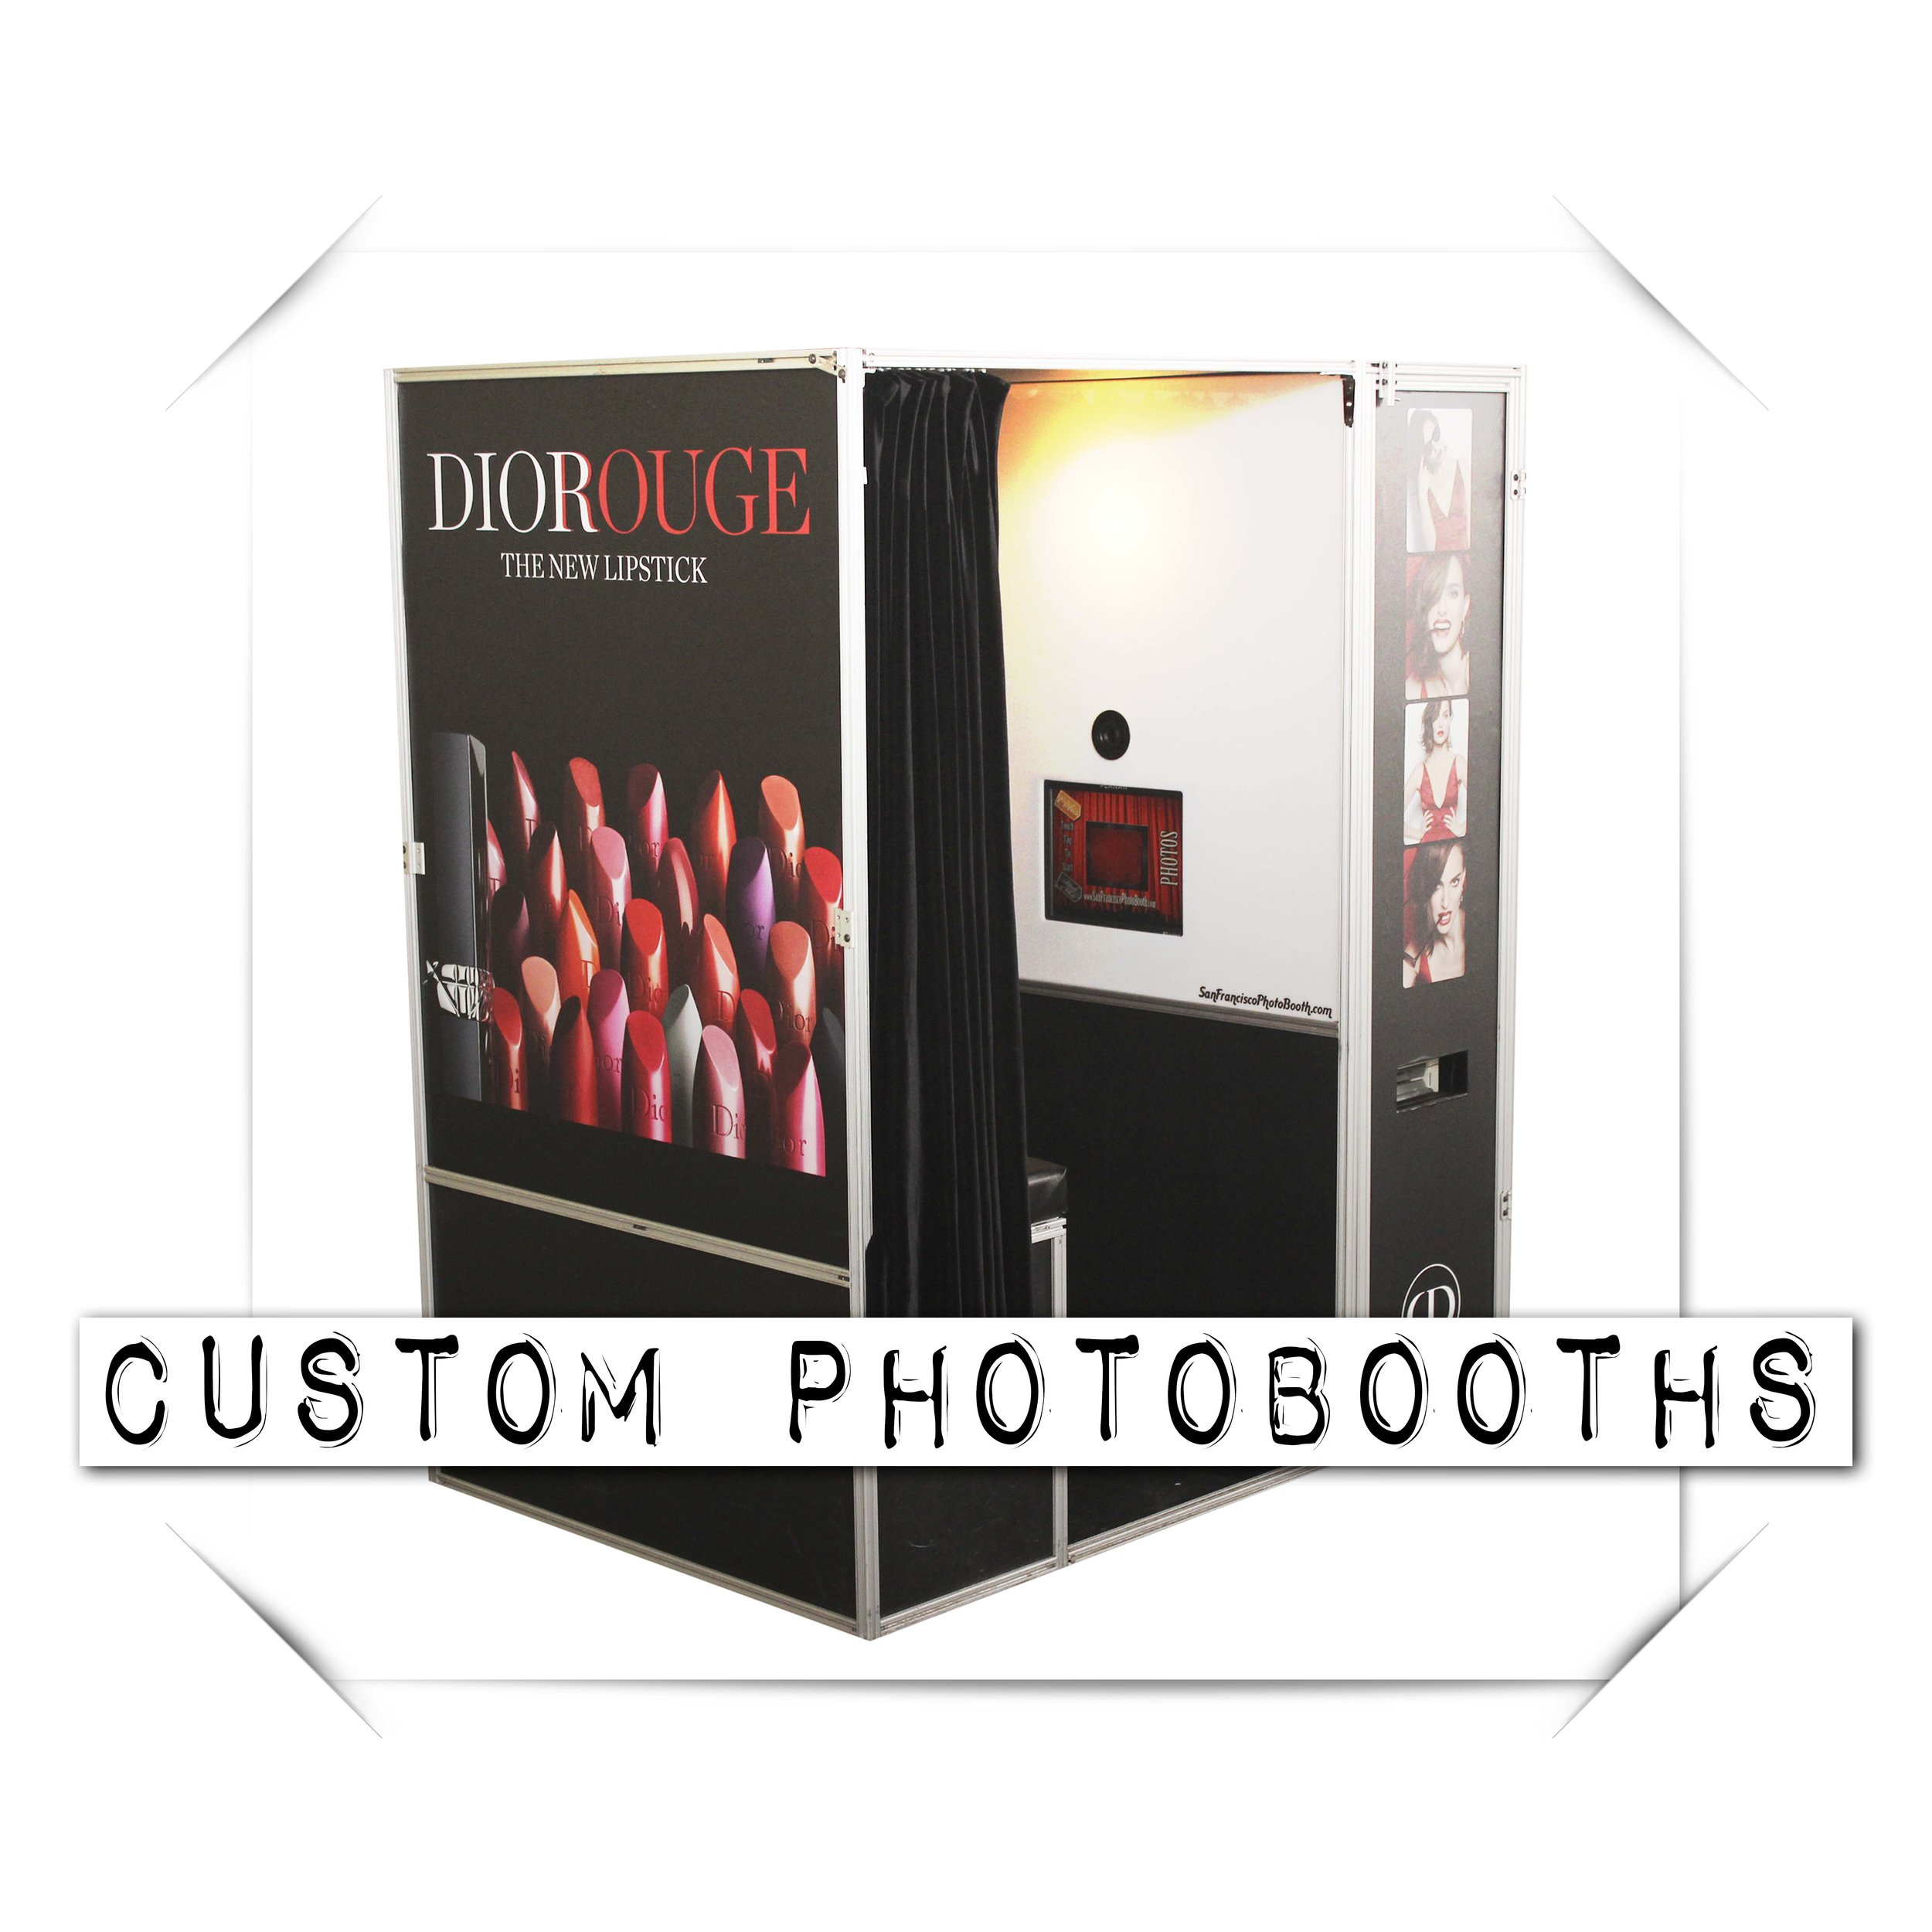 Custom_Photobooths.jpg